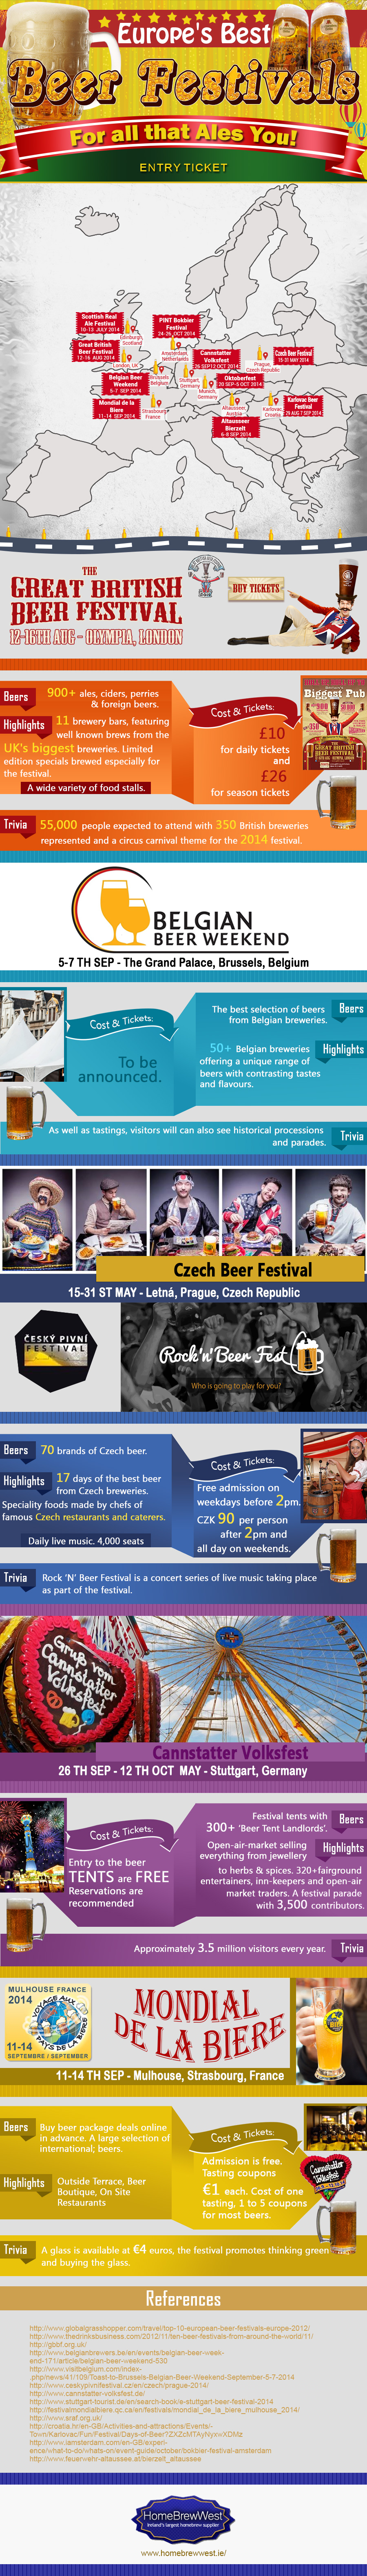 The Biggest Beer Festivals in Europe